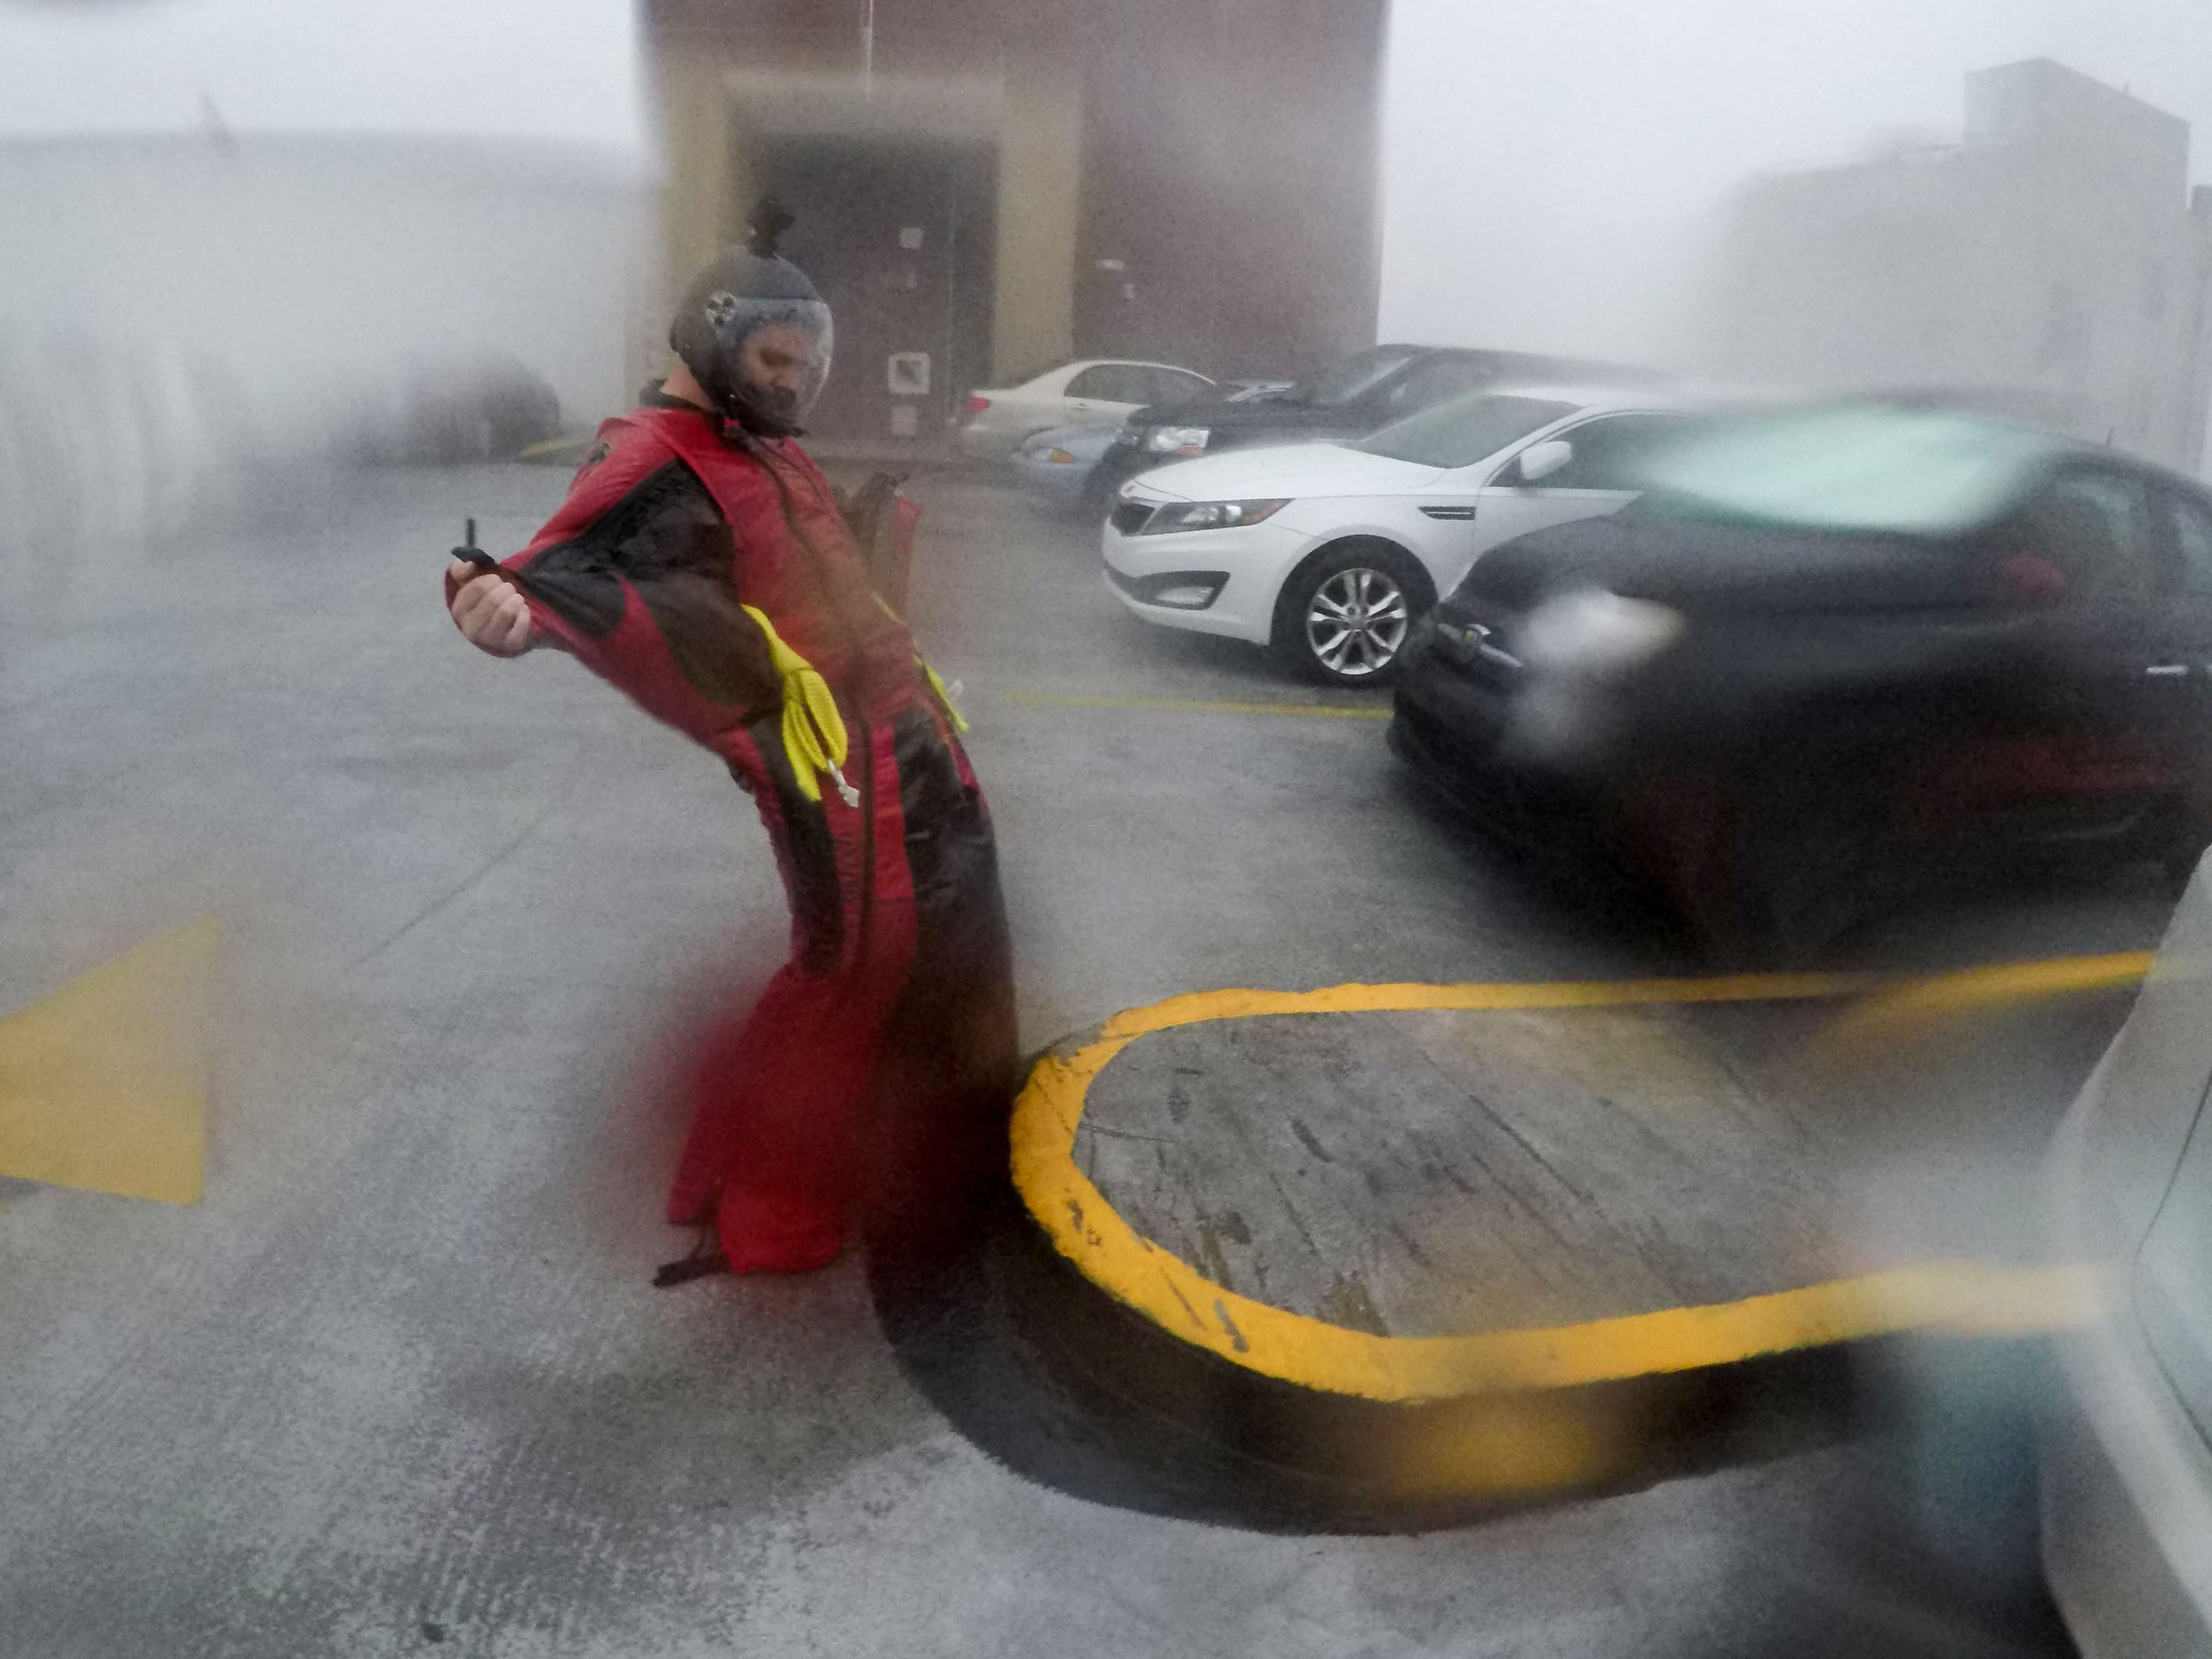 Michael Henderson a professional skydiver, stands on the seventh floor of a parking garage in downtown Wilmington, N.C.  as Hurricane Florence just hit land, Sept. 14, 2018.